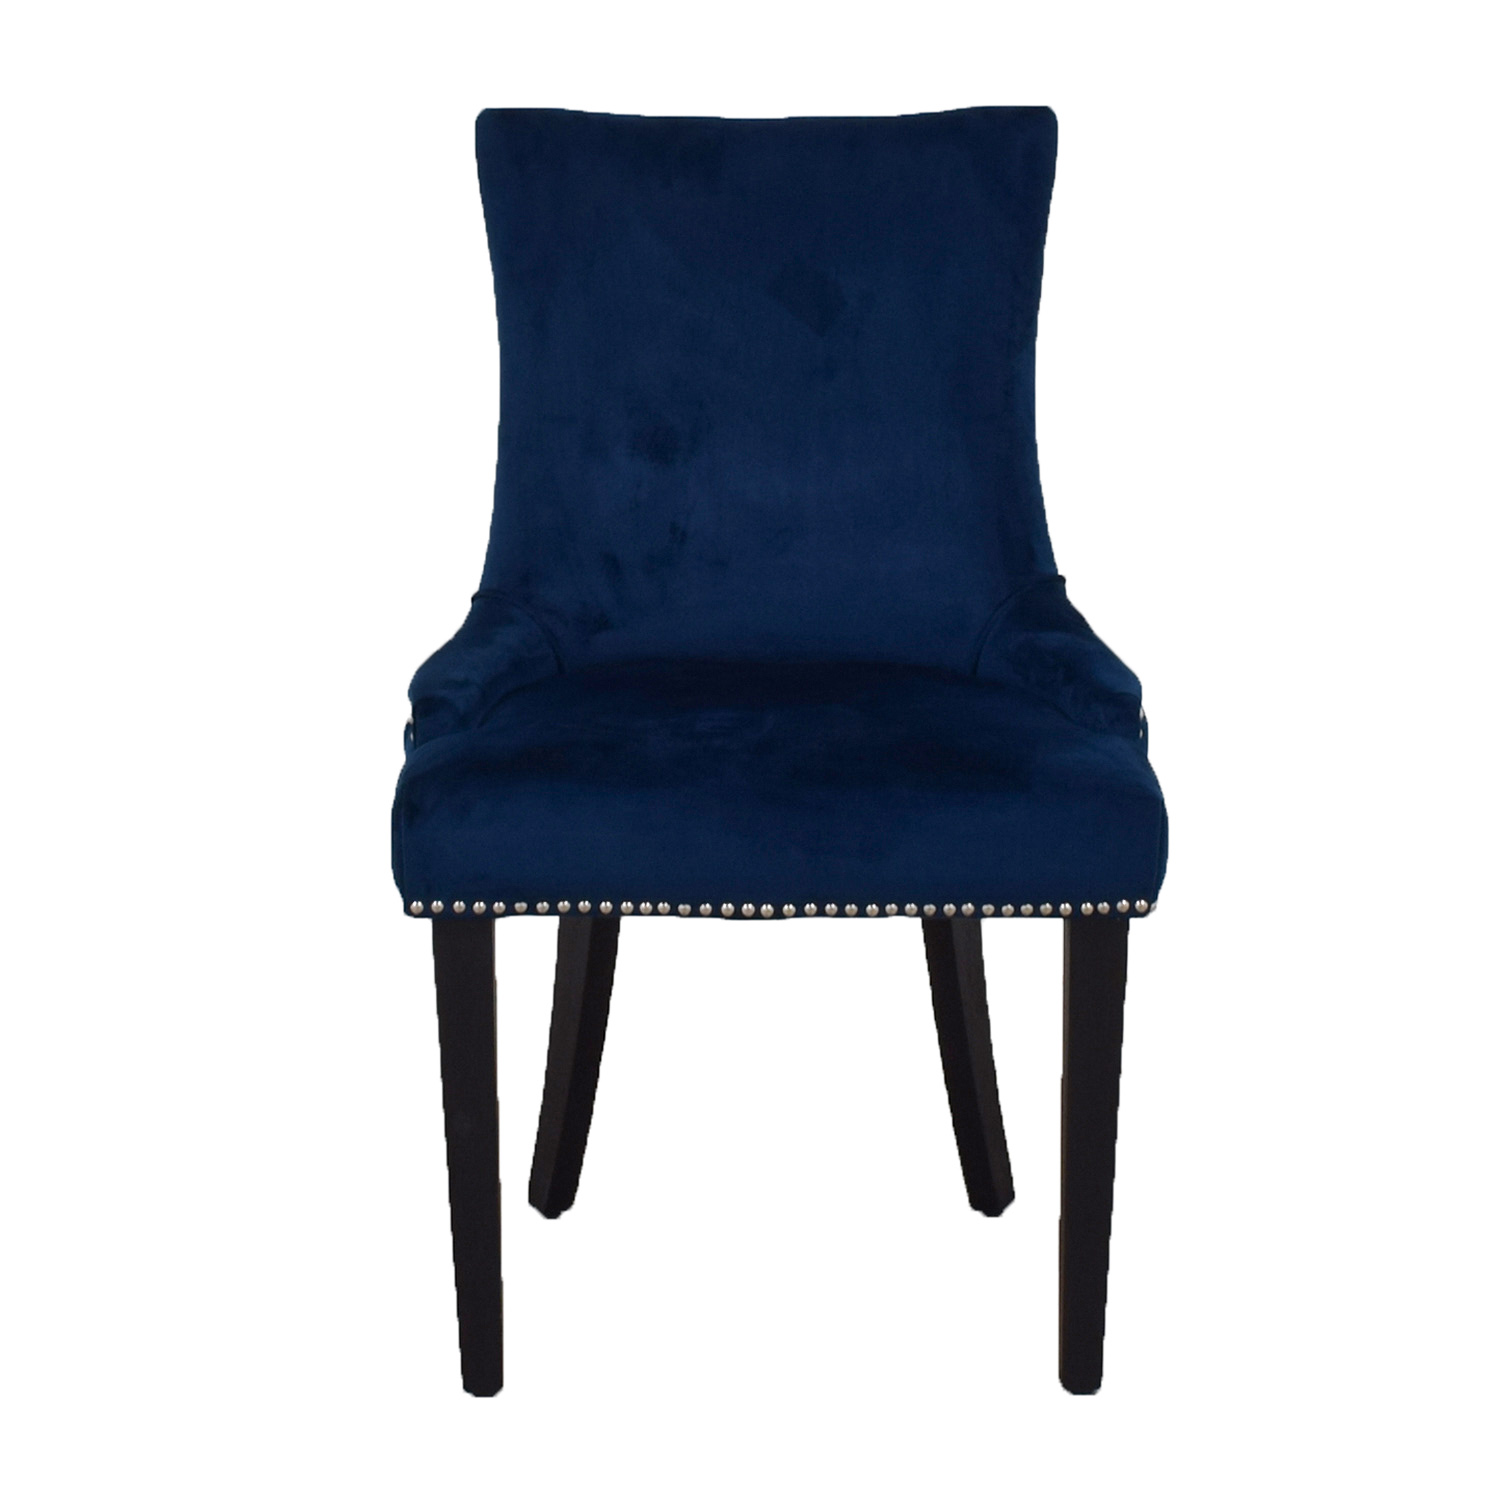 shop Safavieh Blue Nailhead Velvet Accent Chair Safavieh Accent Chairs